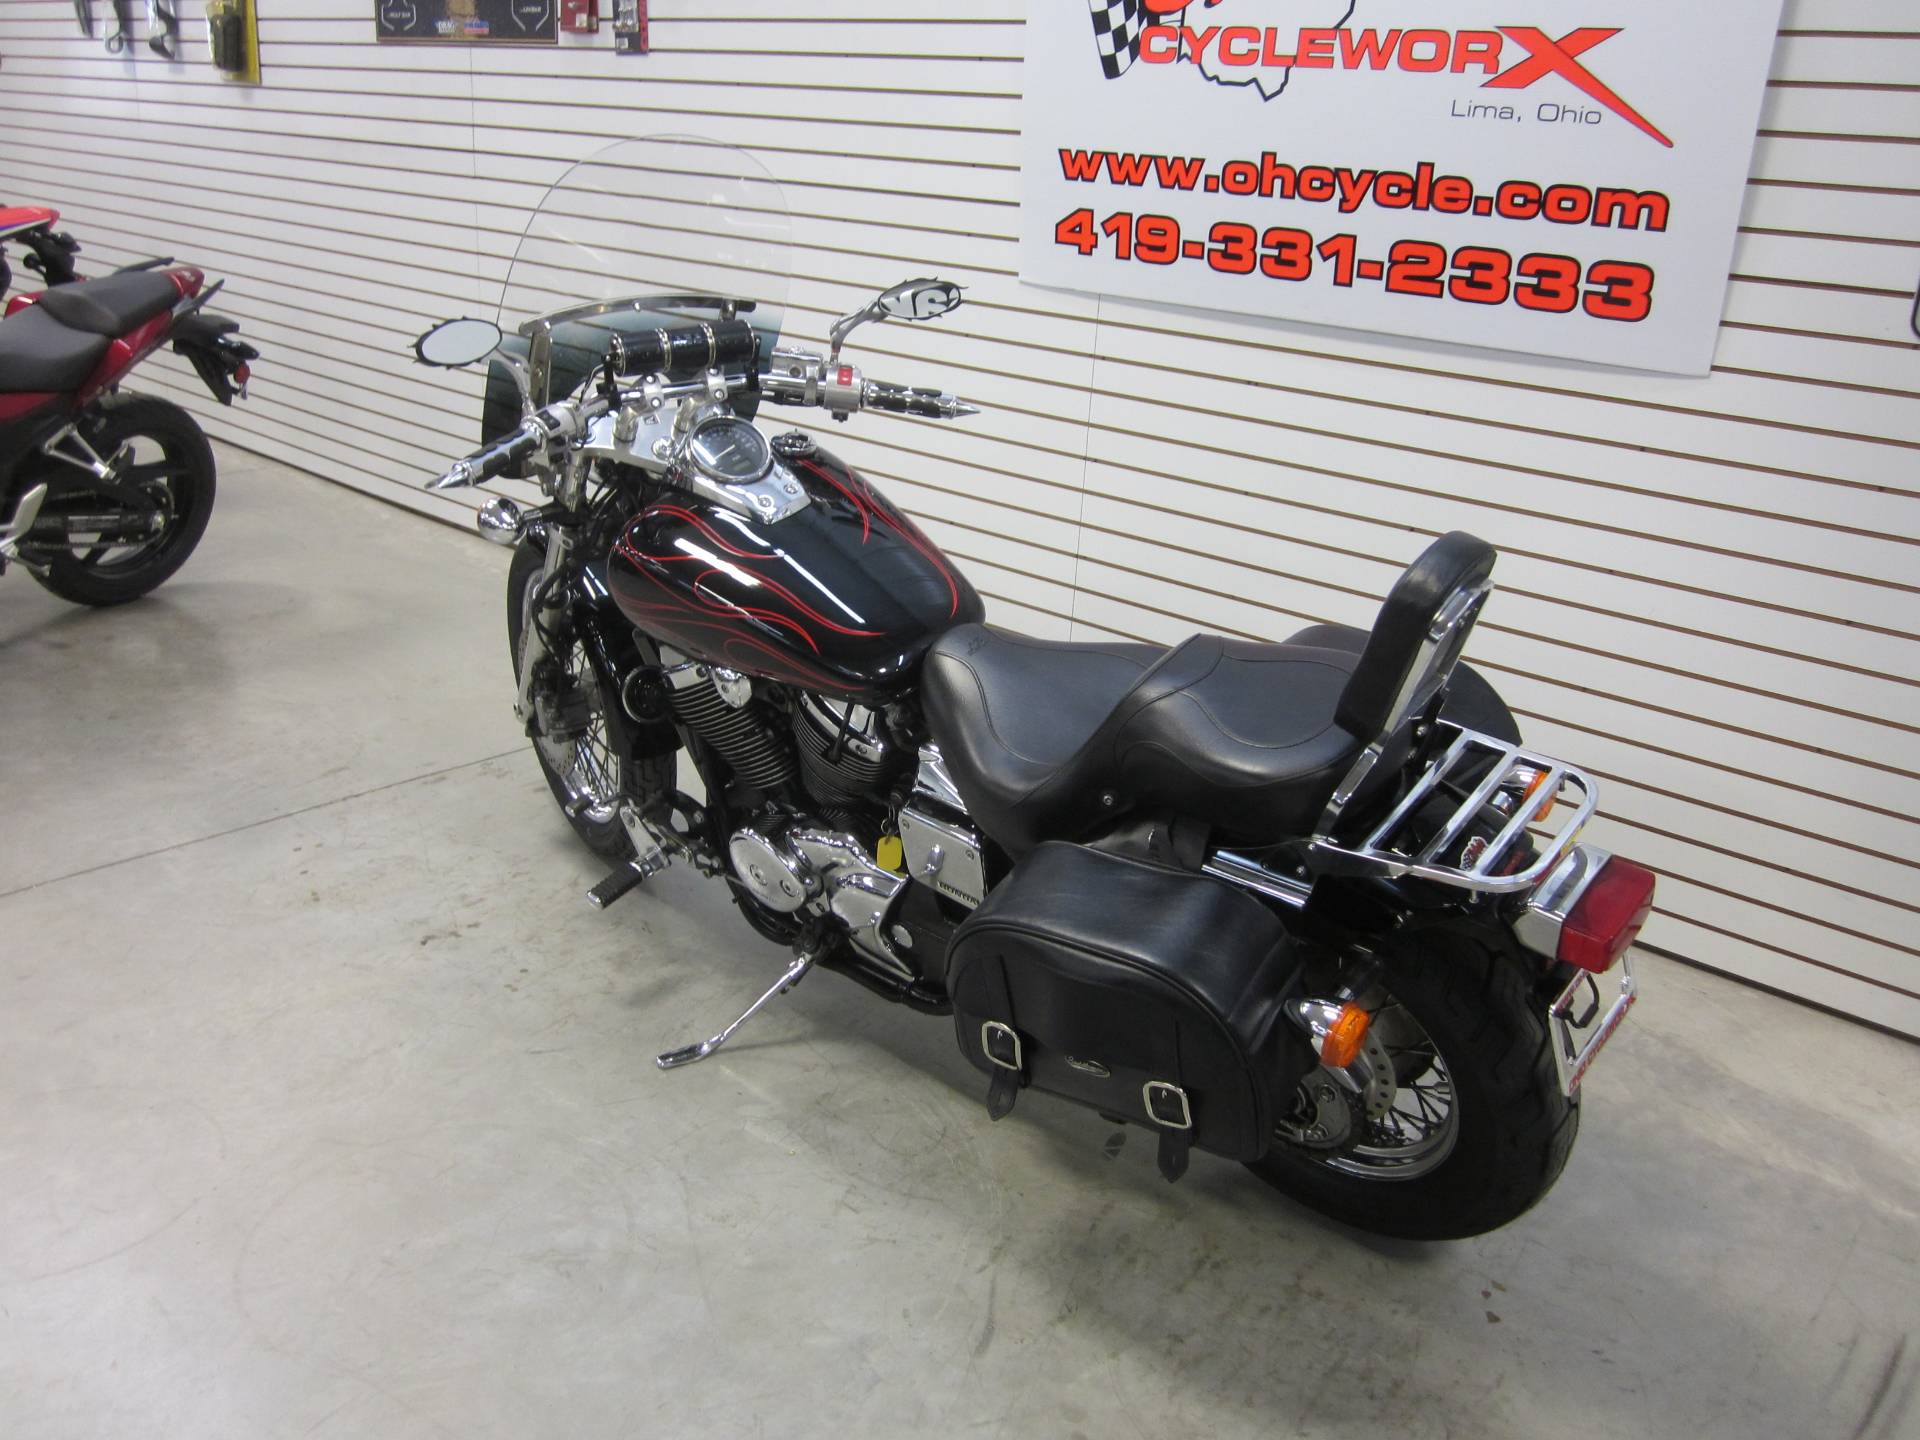 2007 Honda Spirit 750 in Lima, Ohio - Photo 13